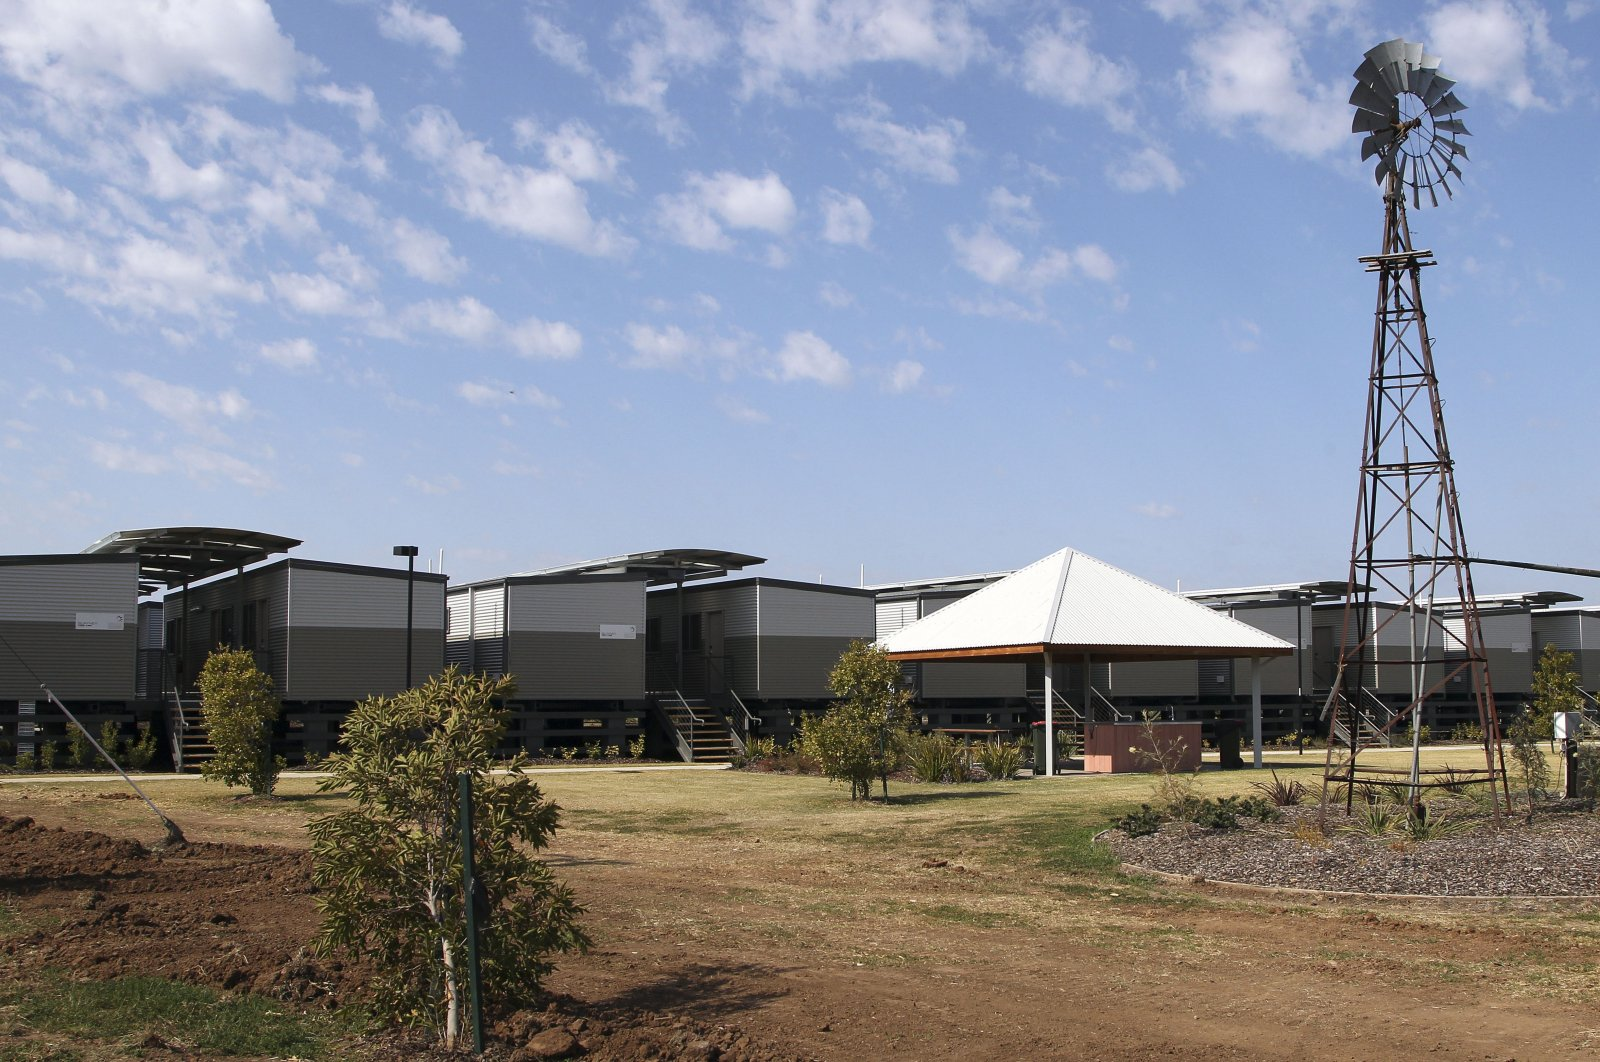 Temporary accommodations are being built to house workers for a local coal mining boom in Narrabri, Australia, near Gunnedah, 450 kilometers (280 miles) northwest of Sydney, Sept. 11, 2012. (AP Photo)